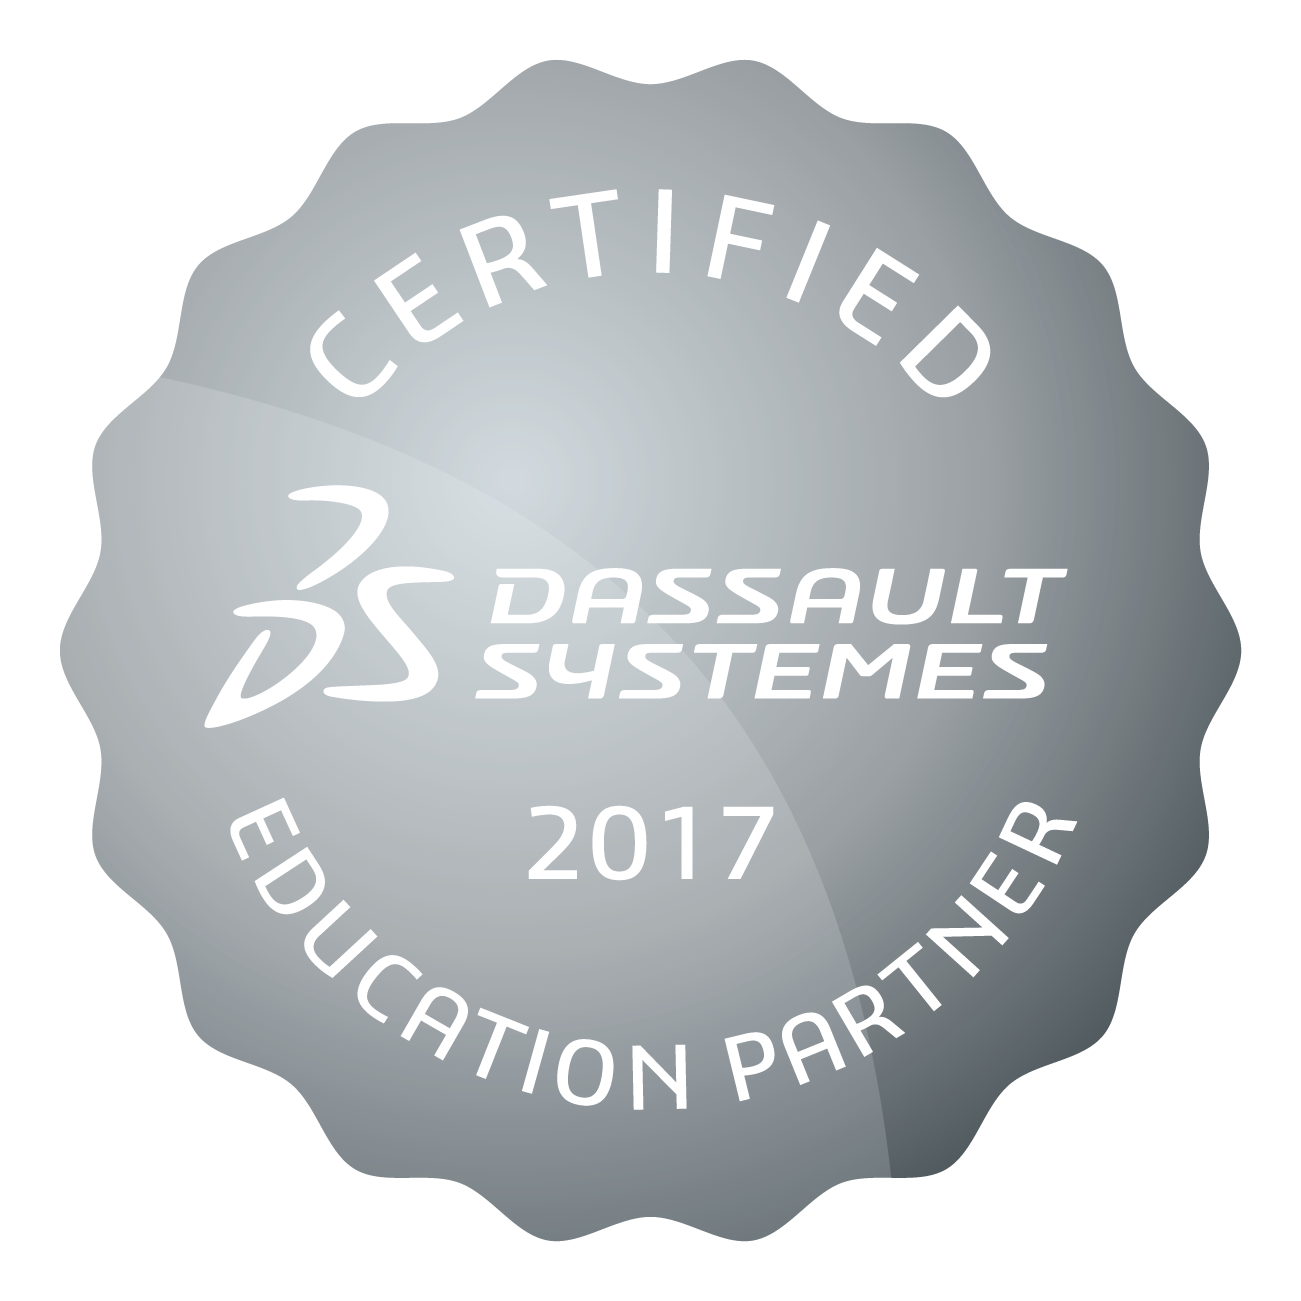 DASSAULT SYSTEMES EDUCATION PARTNER Certified